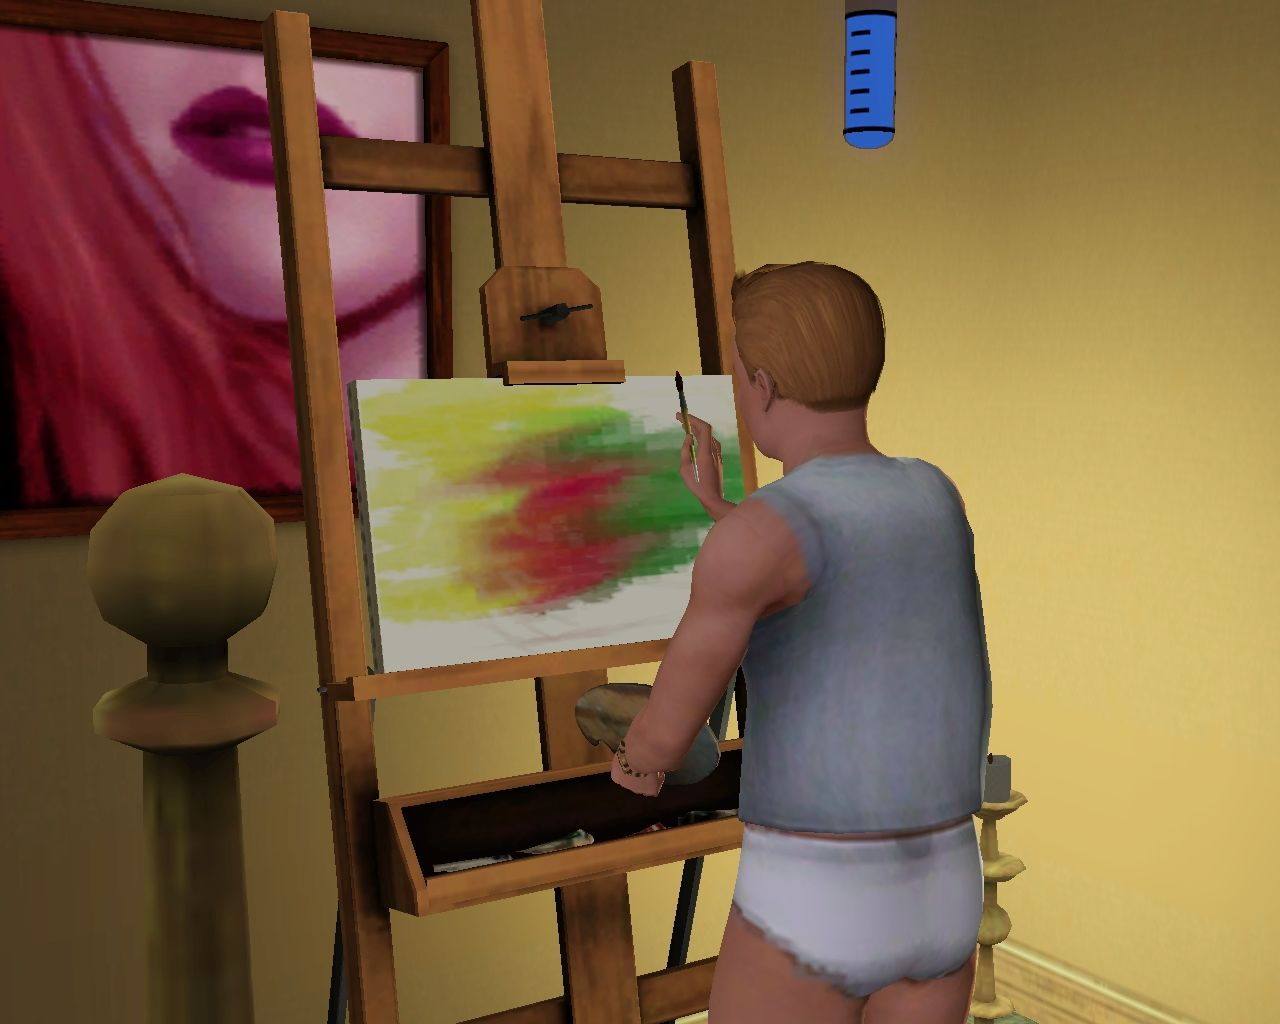 The Sims 3 Windows Your Sim can be an artist ...